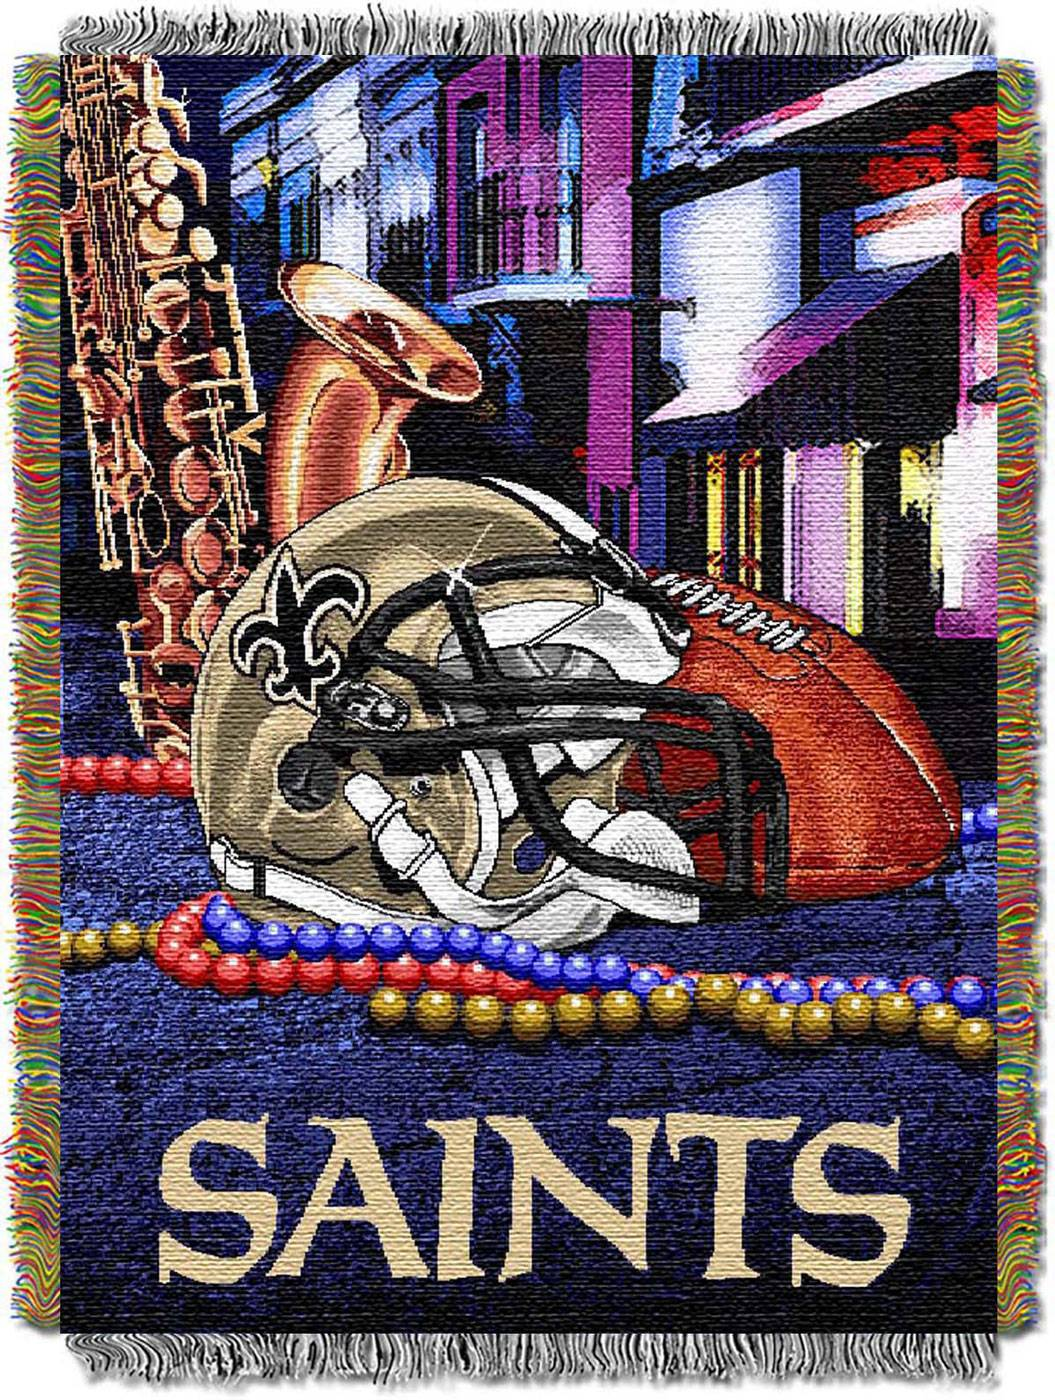 New Orleans Saints Nfl Woven Tapestry Throw